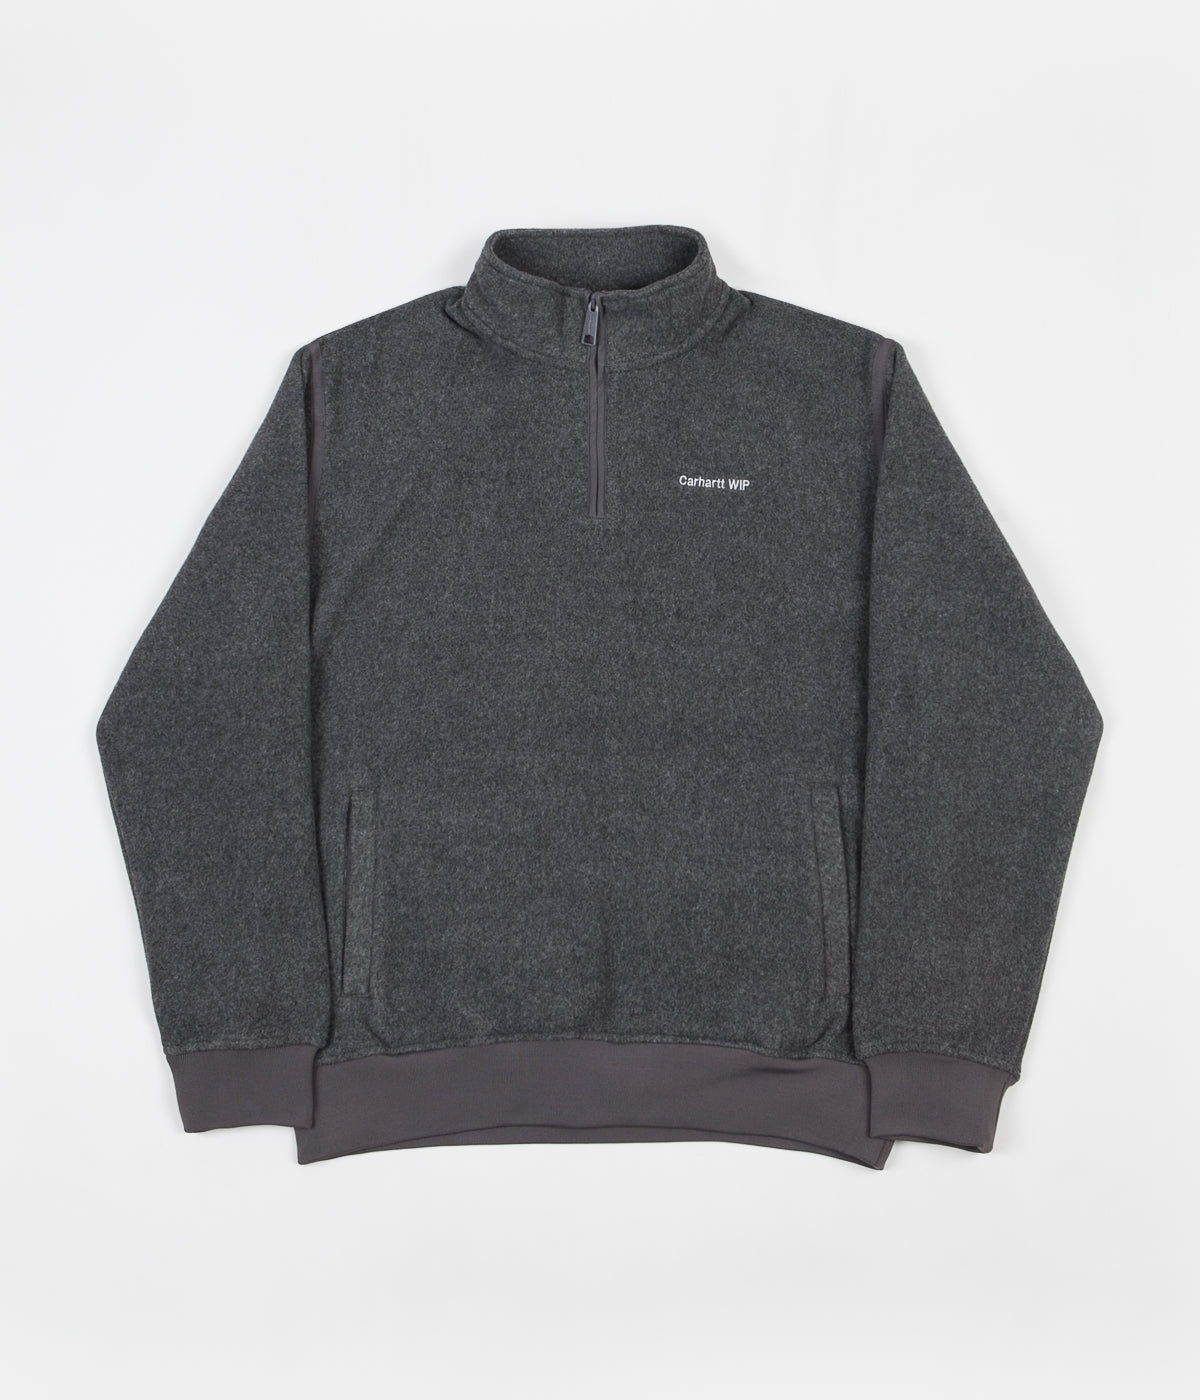 Carhartt Ailey Crewneck Sweatshirt - Grey Heather / White